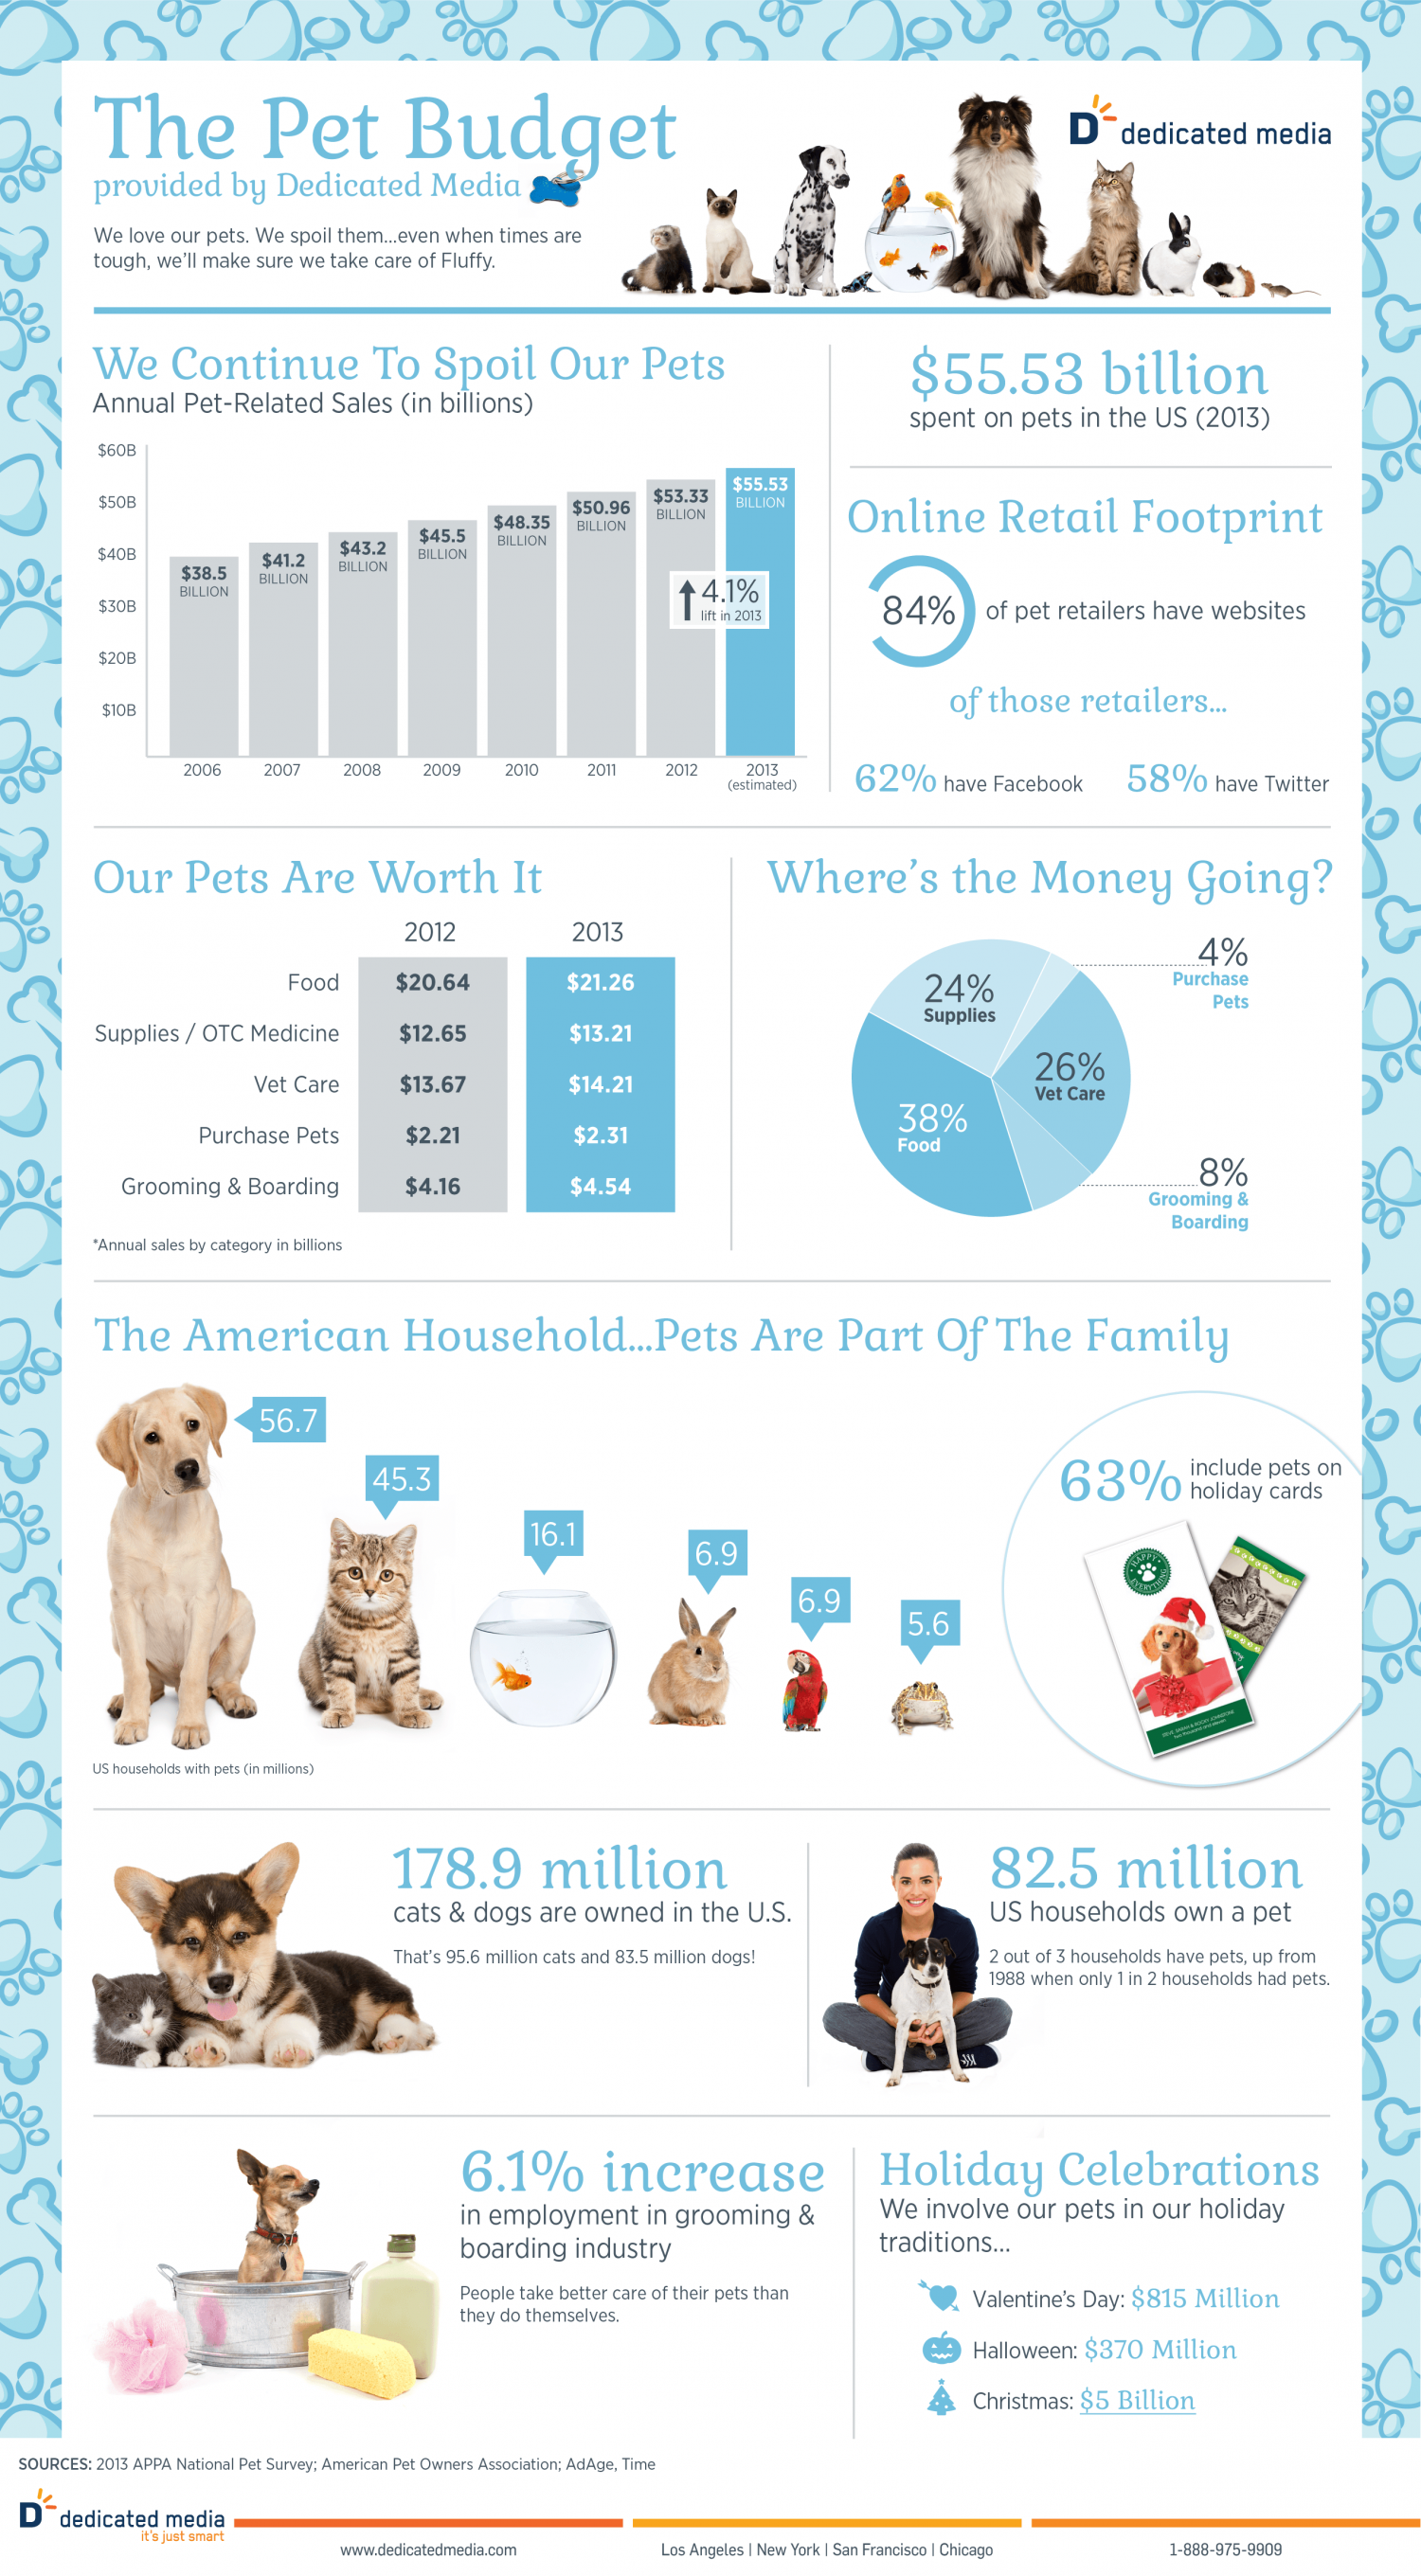 The 2013 Pet Budget Infographic